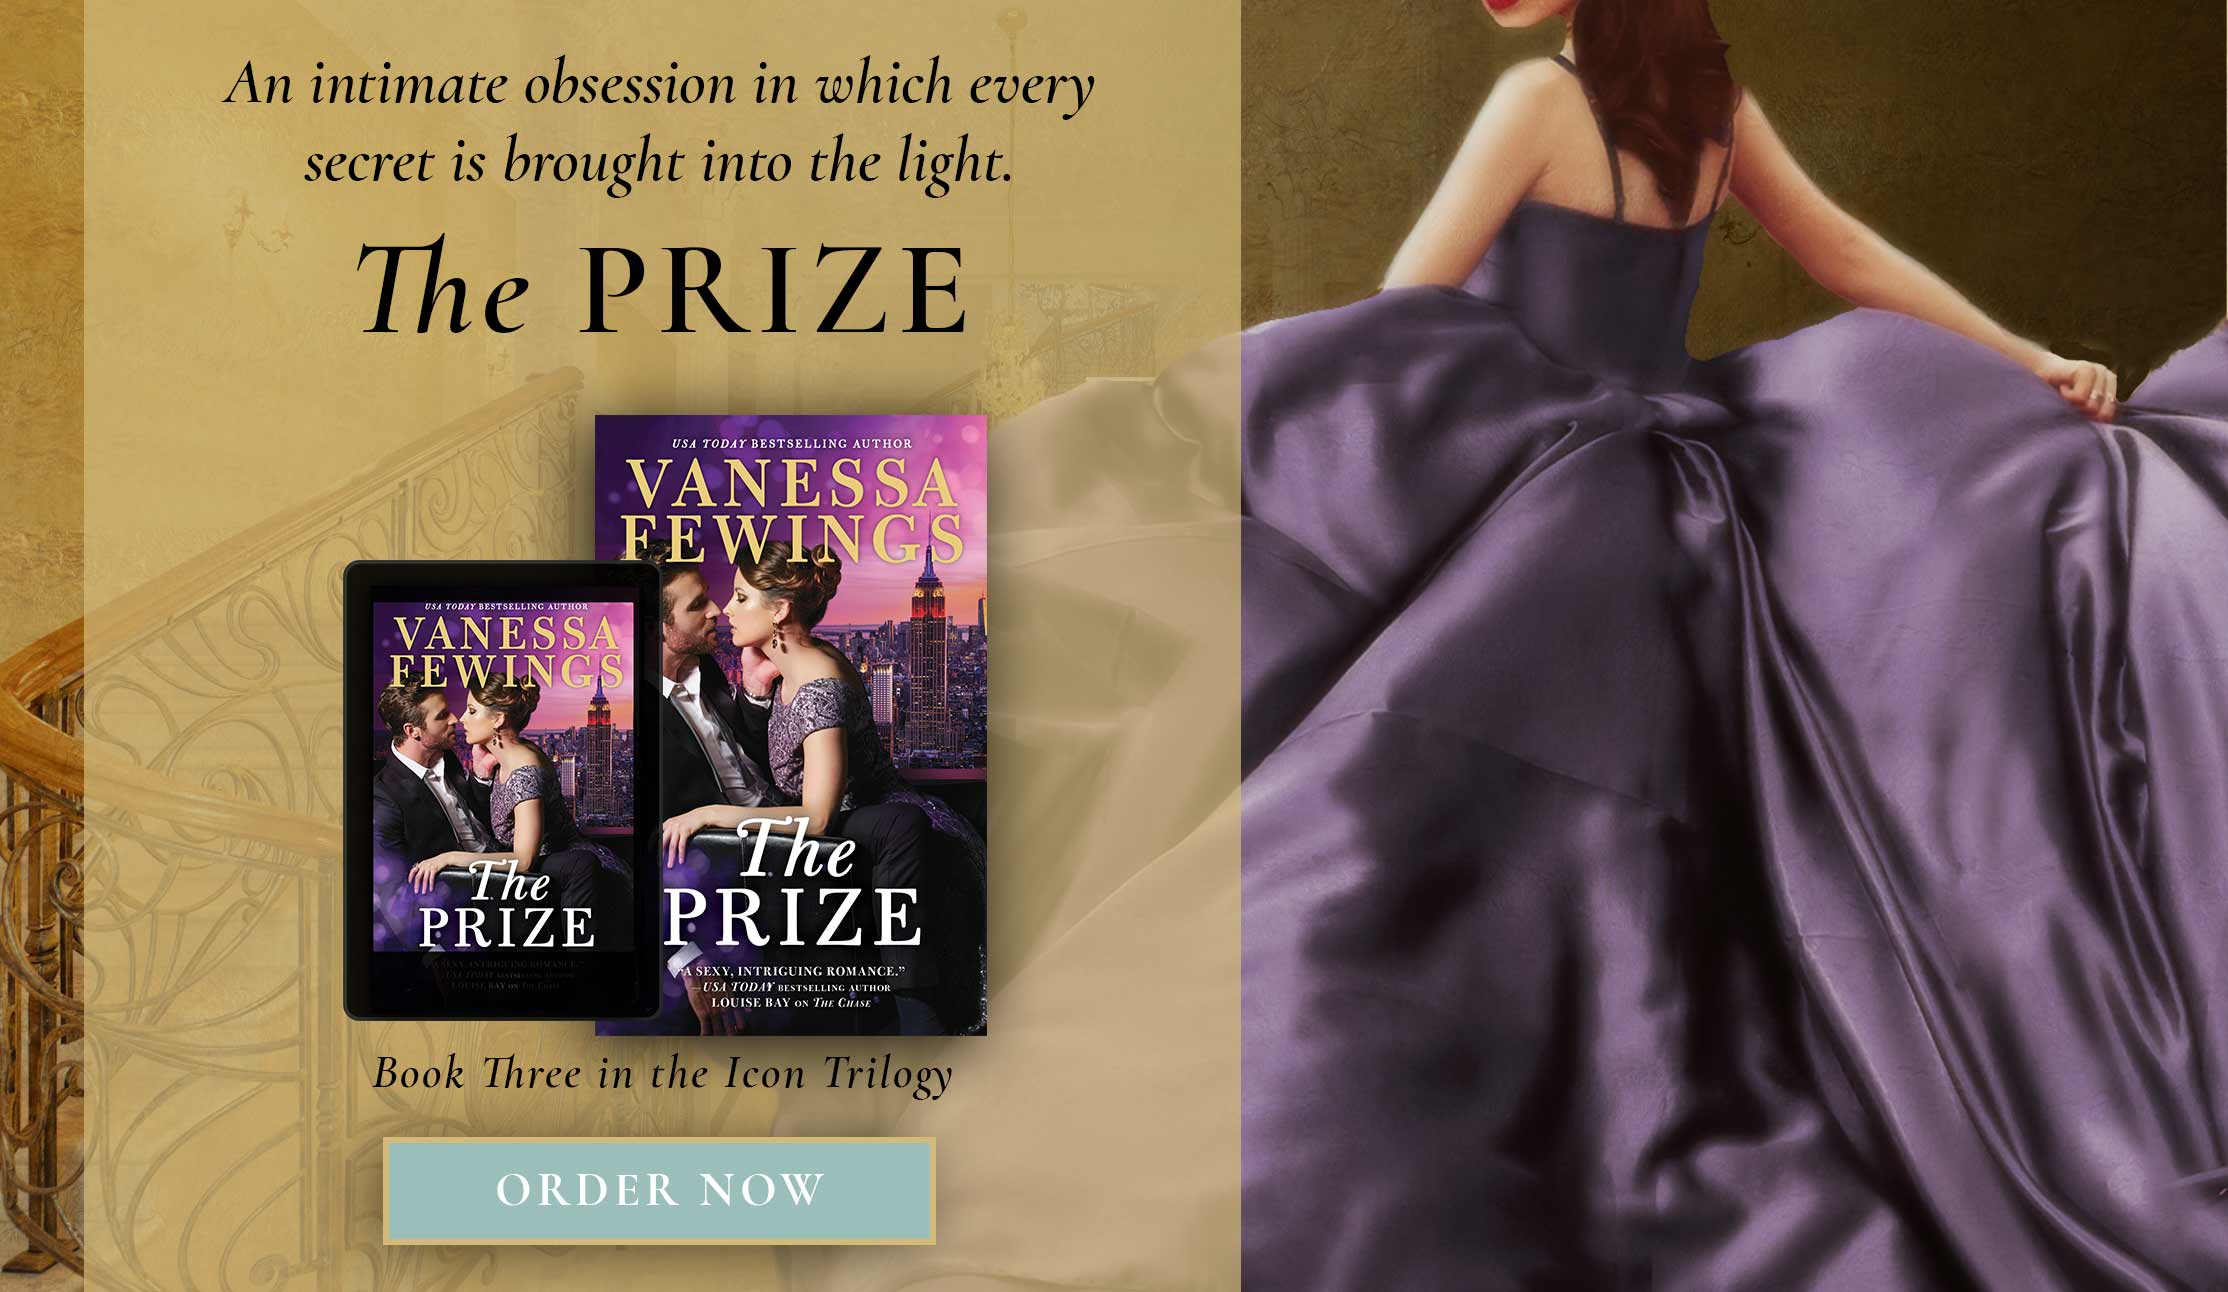 The Prize - book 3 in the Icon Trilogy by Vanessa Fewings